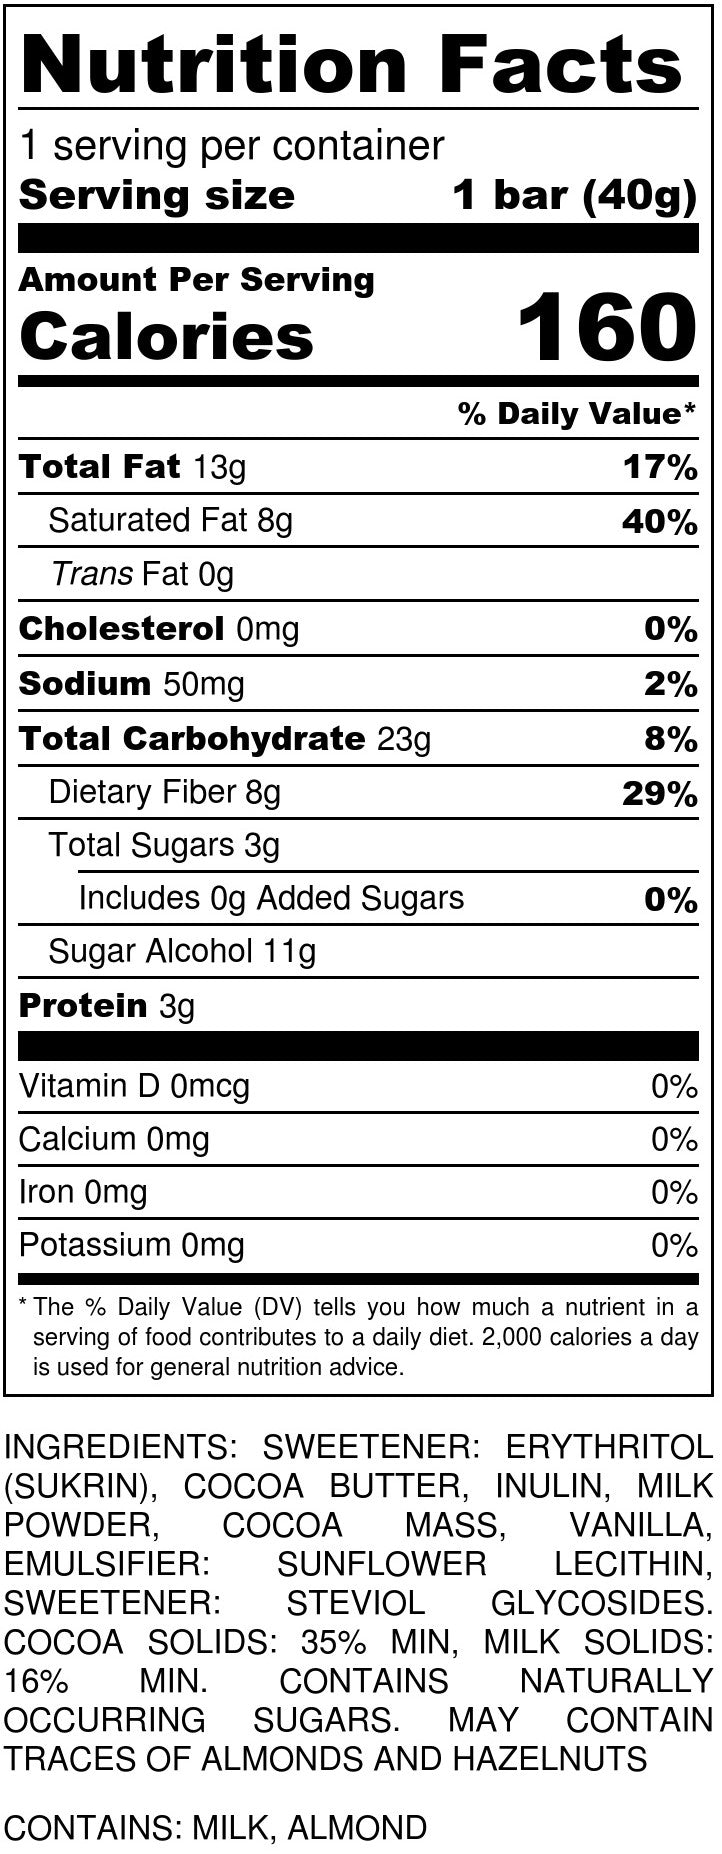 Milk Chocolate Nutrition Facts